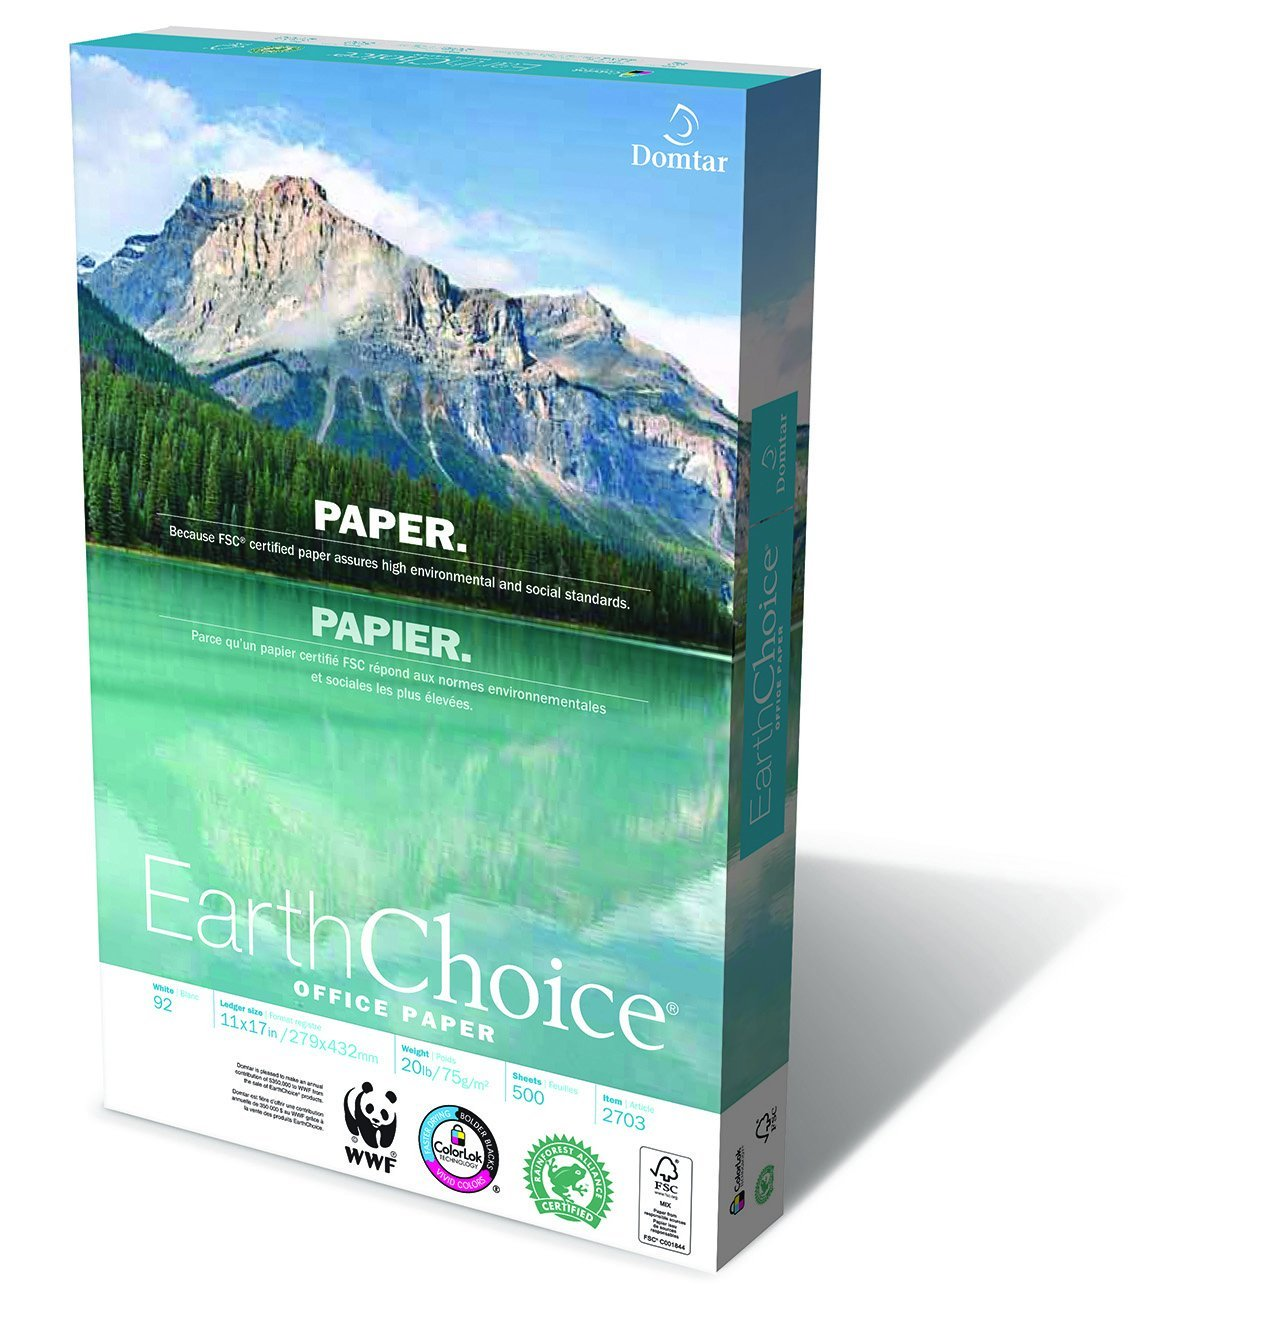 "Domtar Earthchoice Office Paper, 11""x17"", Ream"